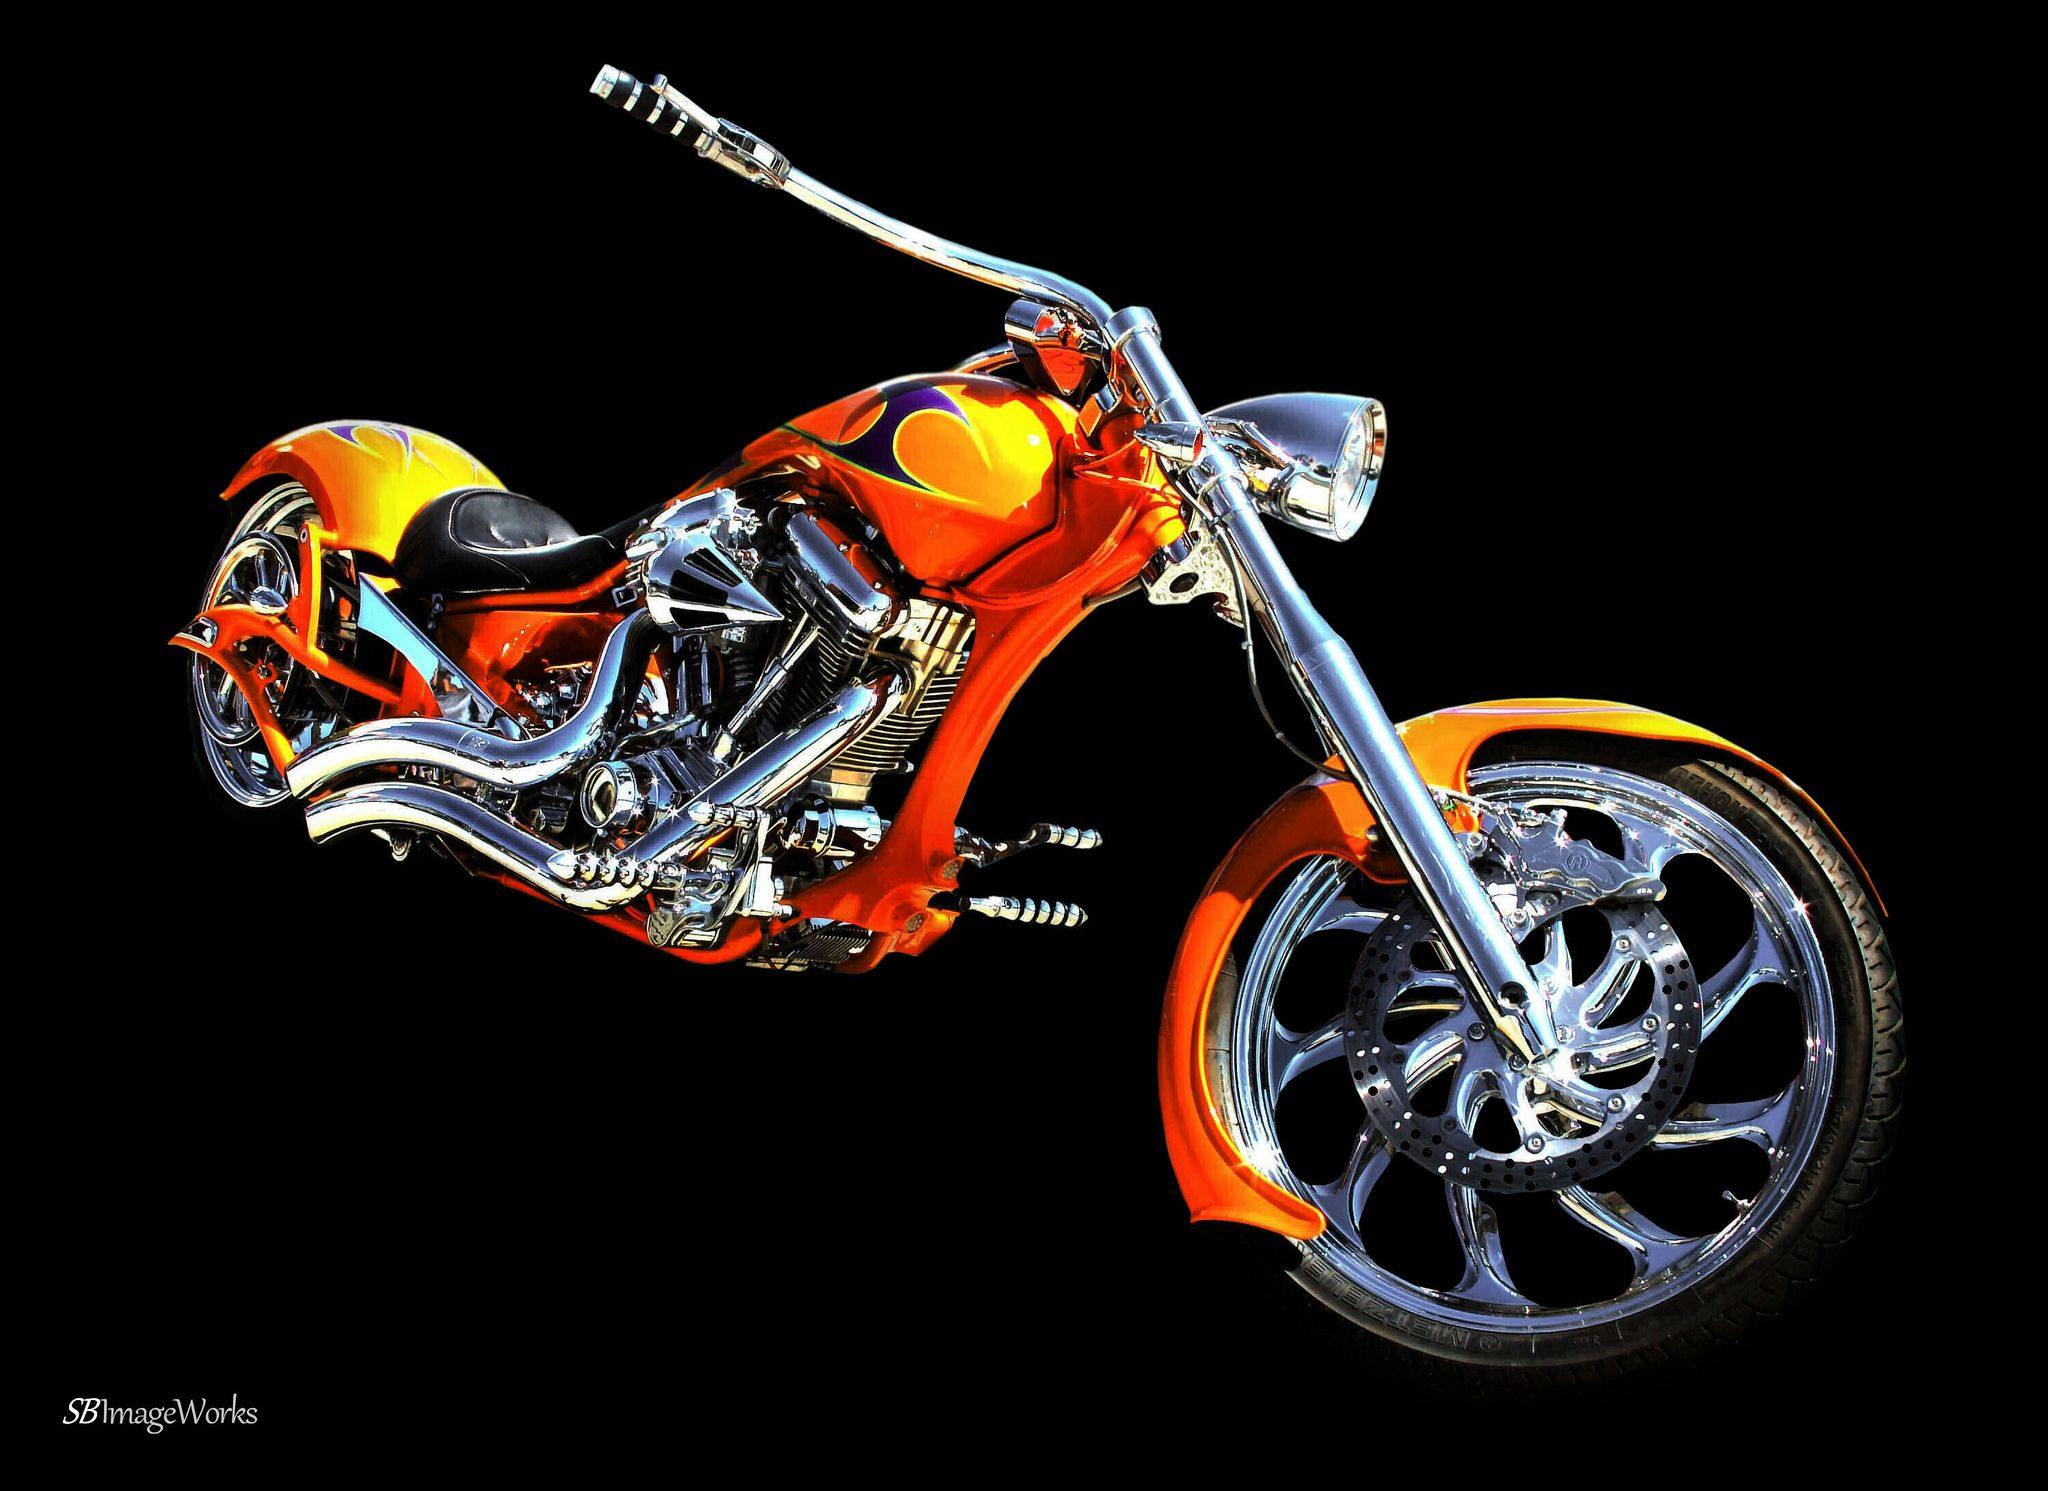 https://flic.kr/p/q5iz8X | bike art.... | from the Hooters tour car show archives....a 12 x 10 print for a friend   copyright SB ImageWorks